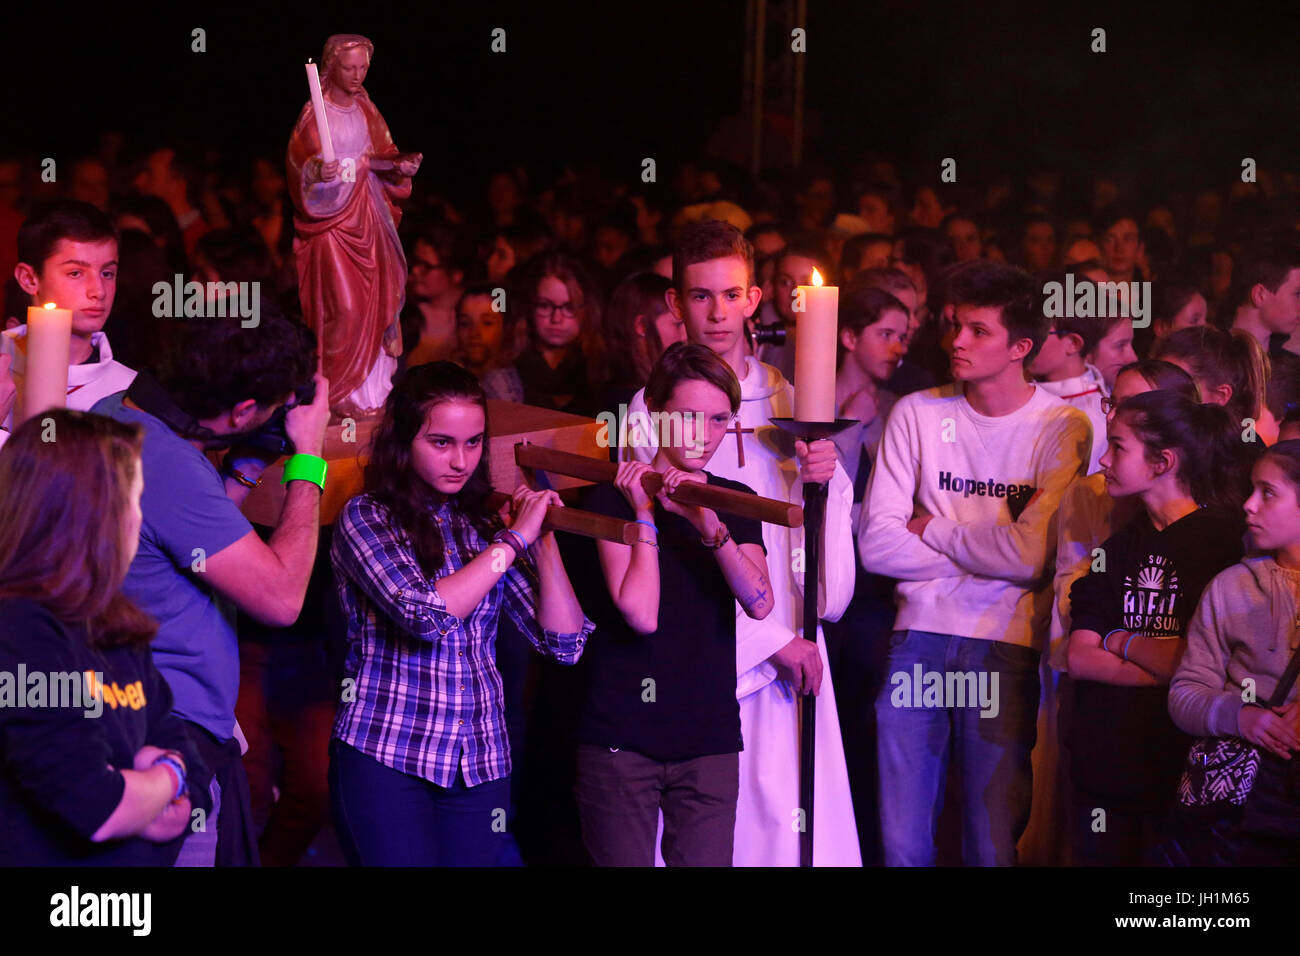 Hopeteen festival, Issy-les-Moulineaux, France. Mass entrance procession. Stock Photo